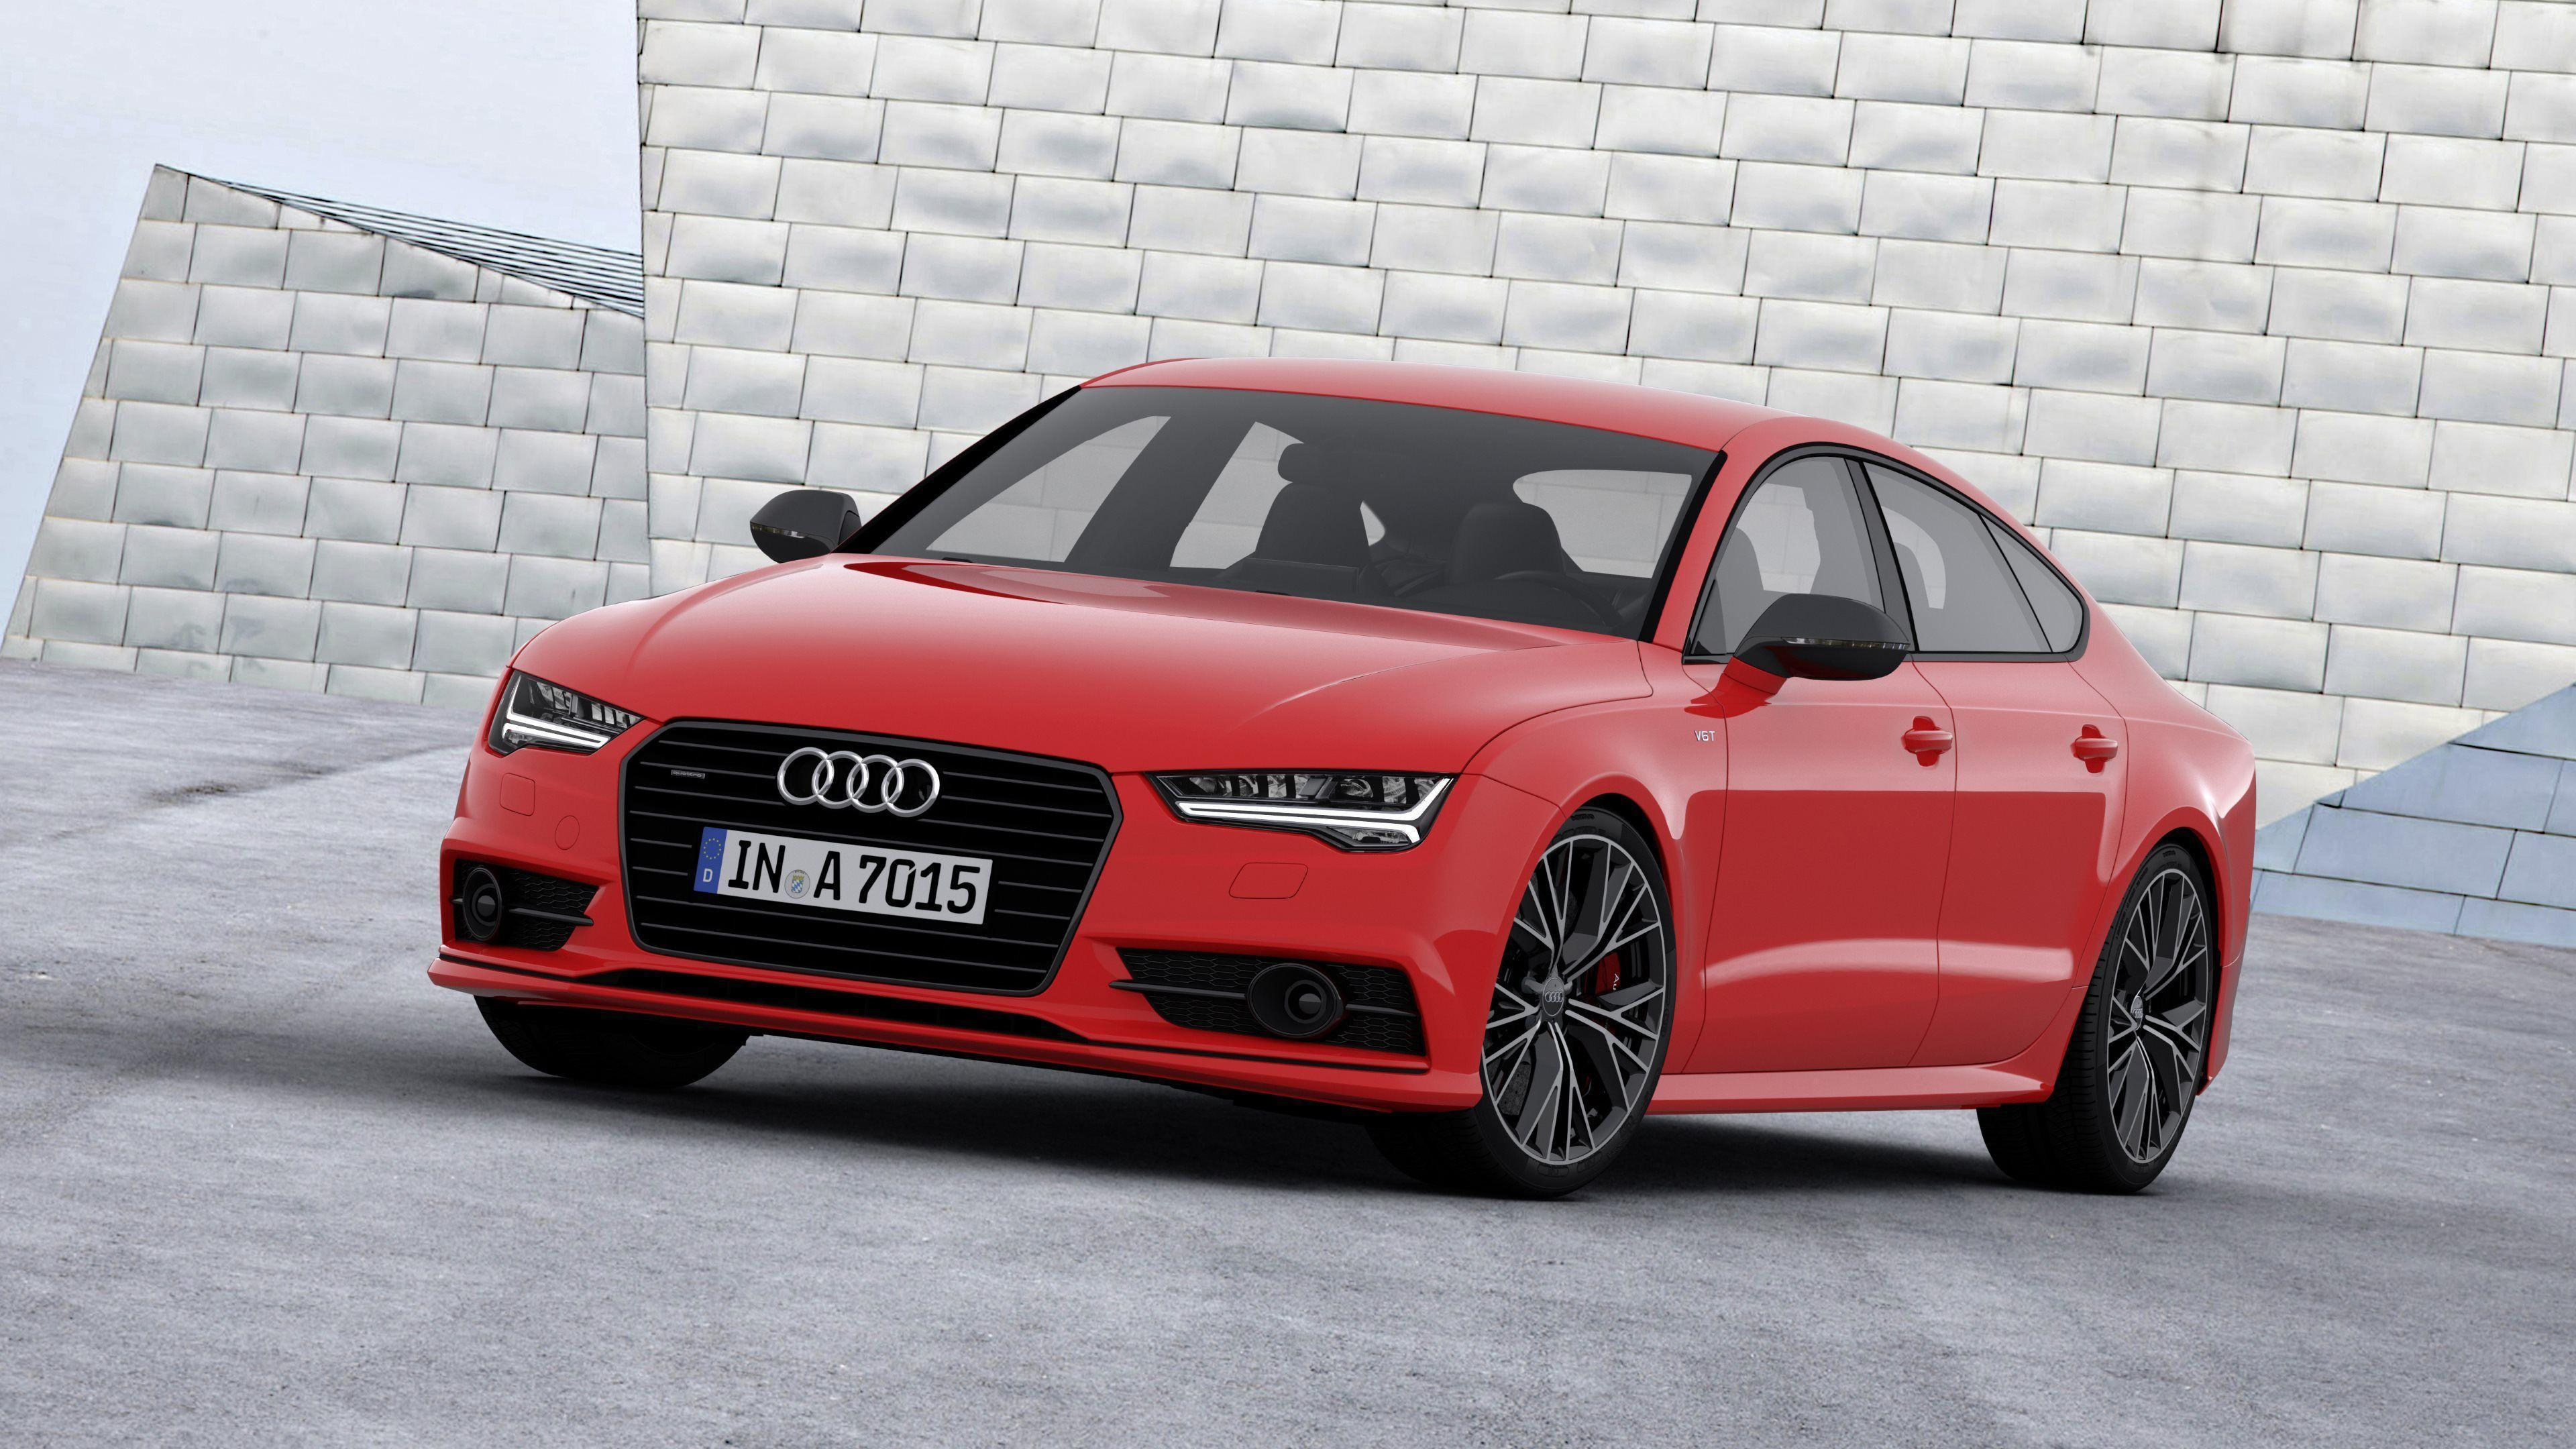 Audi A7 Sportback Wallpapers · HD Wallpapers